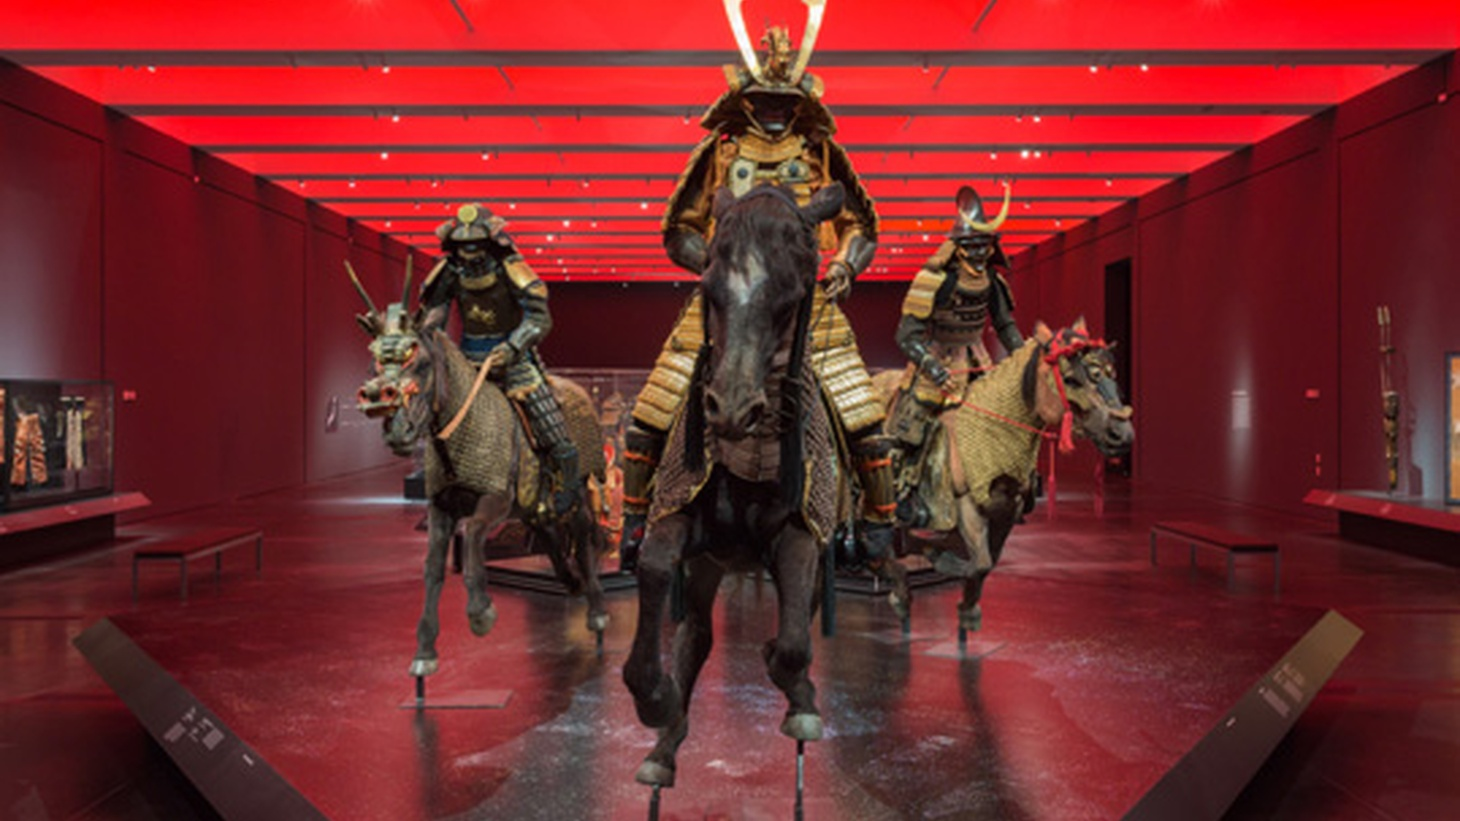 Edward Goldman is swept away by an invasion of Samurai and Jazz at LACMA.